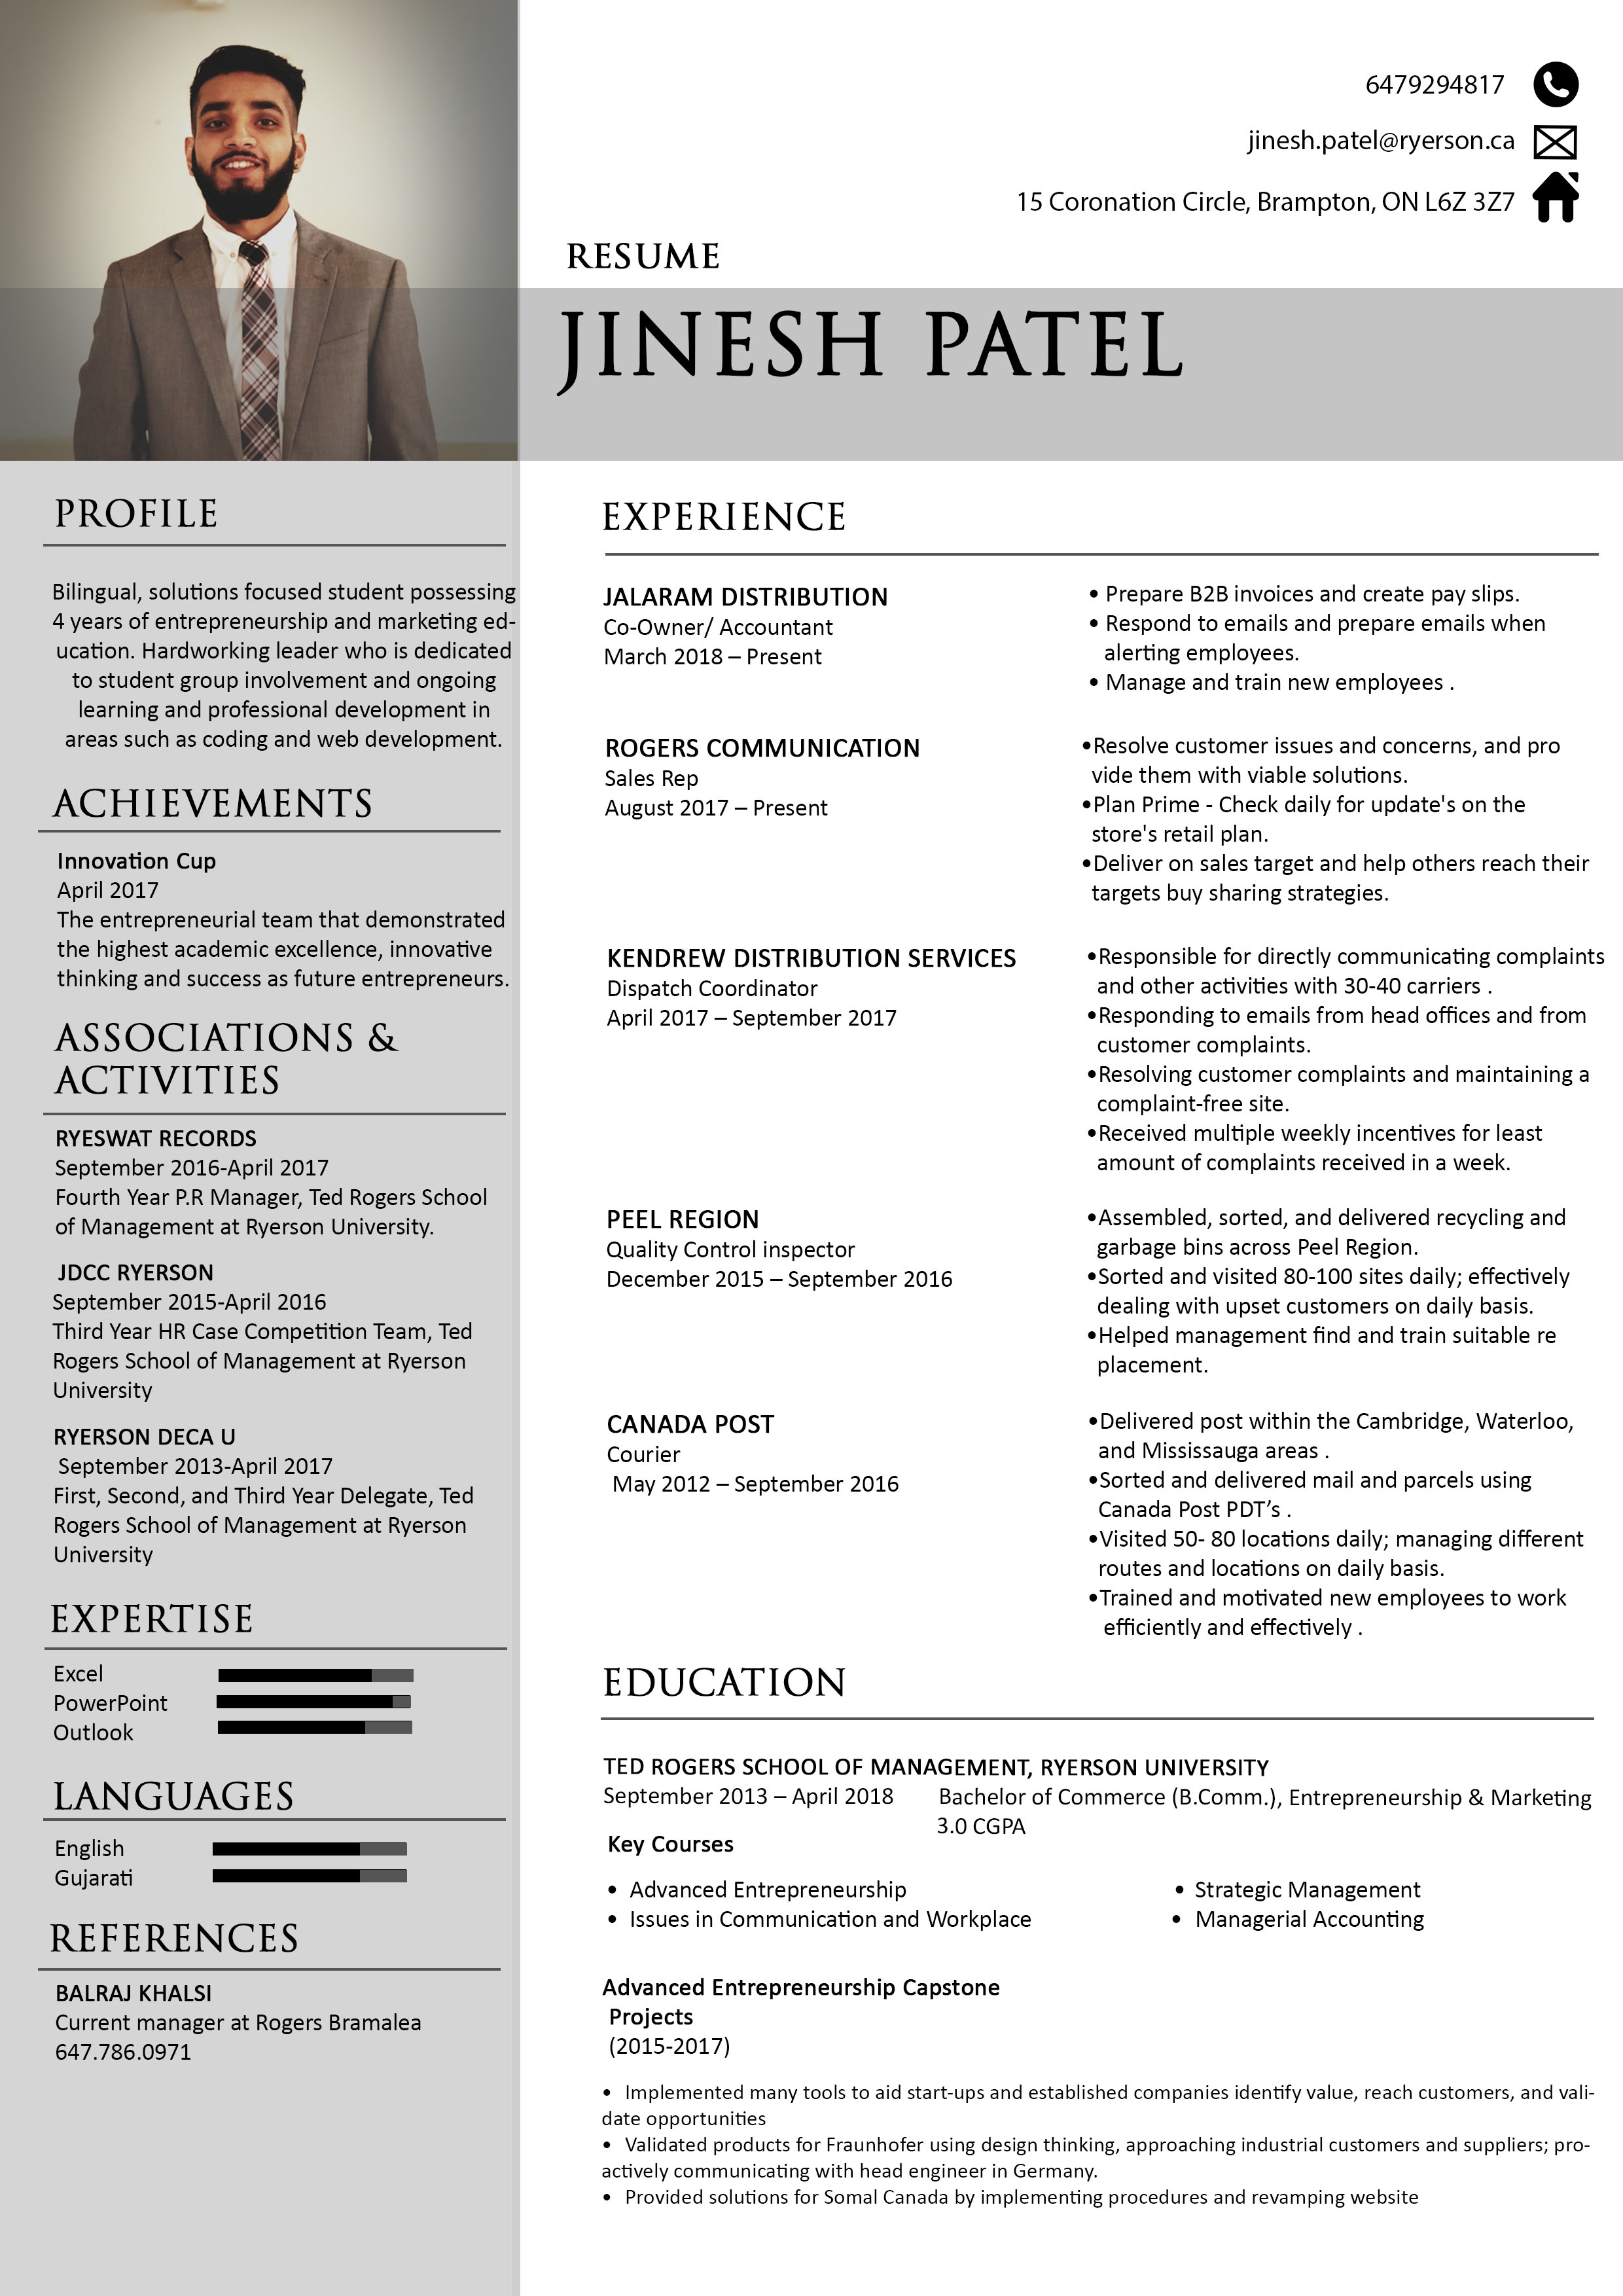 Professional Resume Writer by Photoshop, Illustrator and Microsoft Word